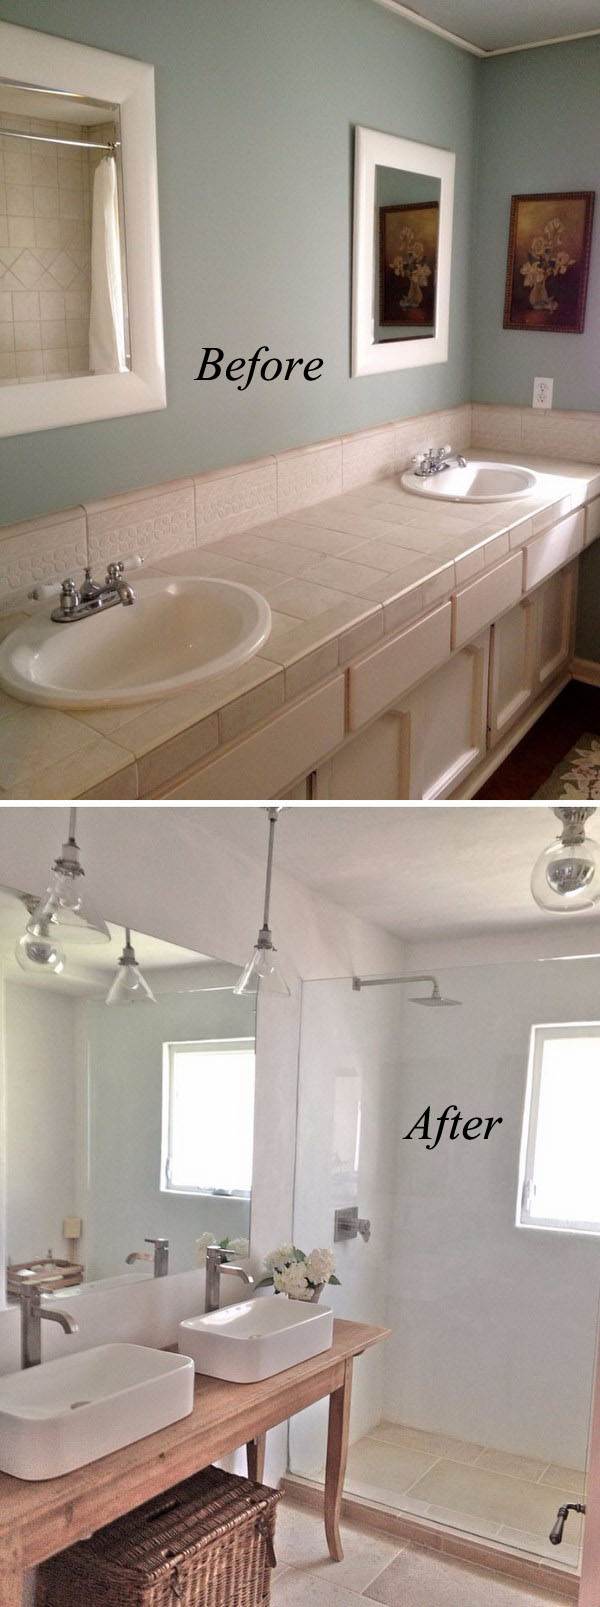 Clean and crisp bathroom renovation